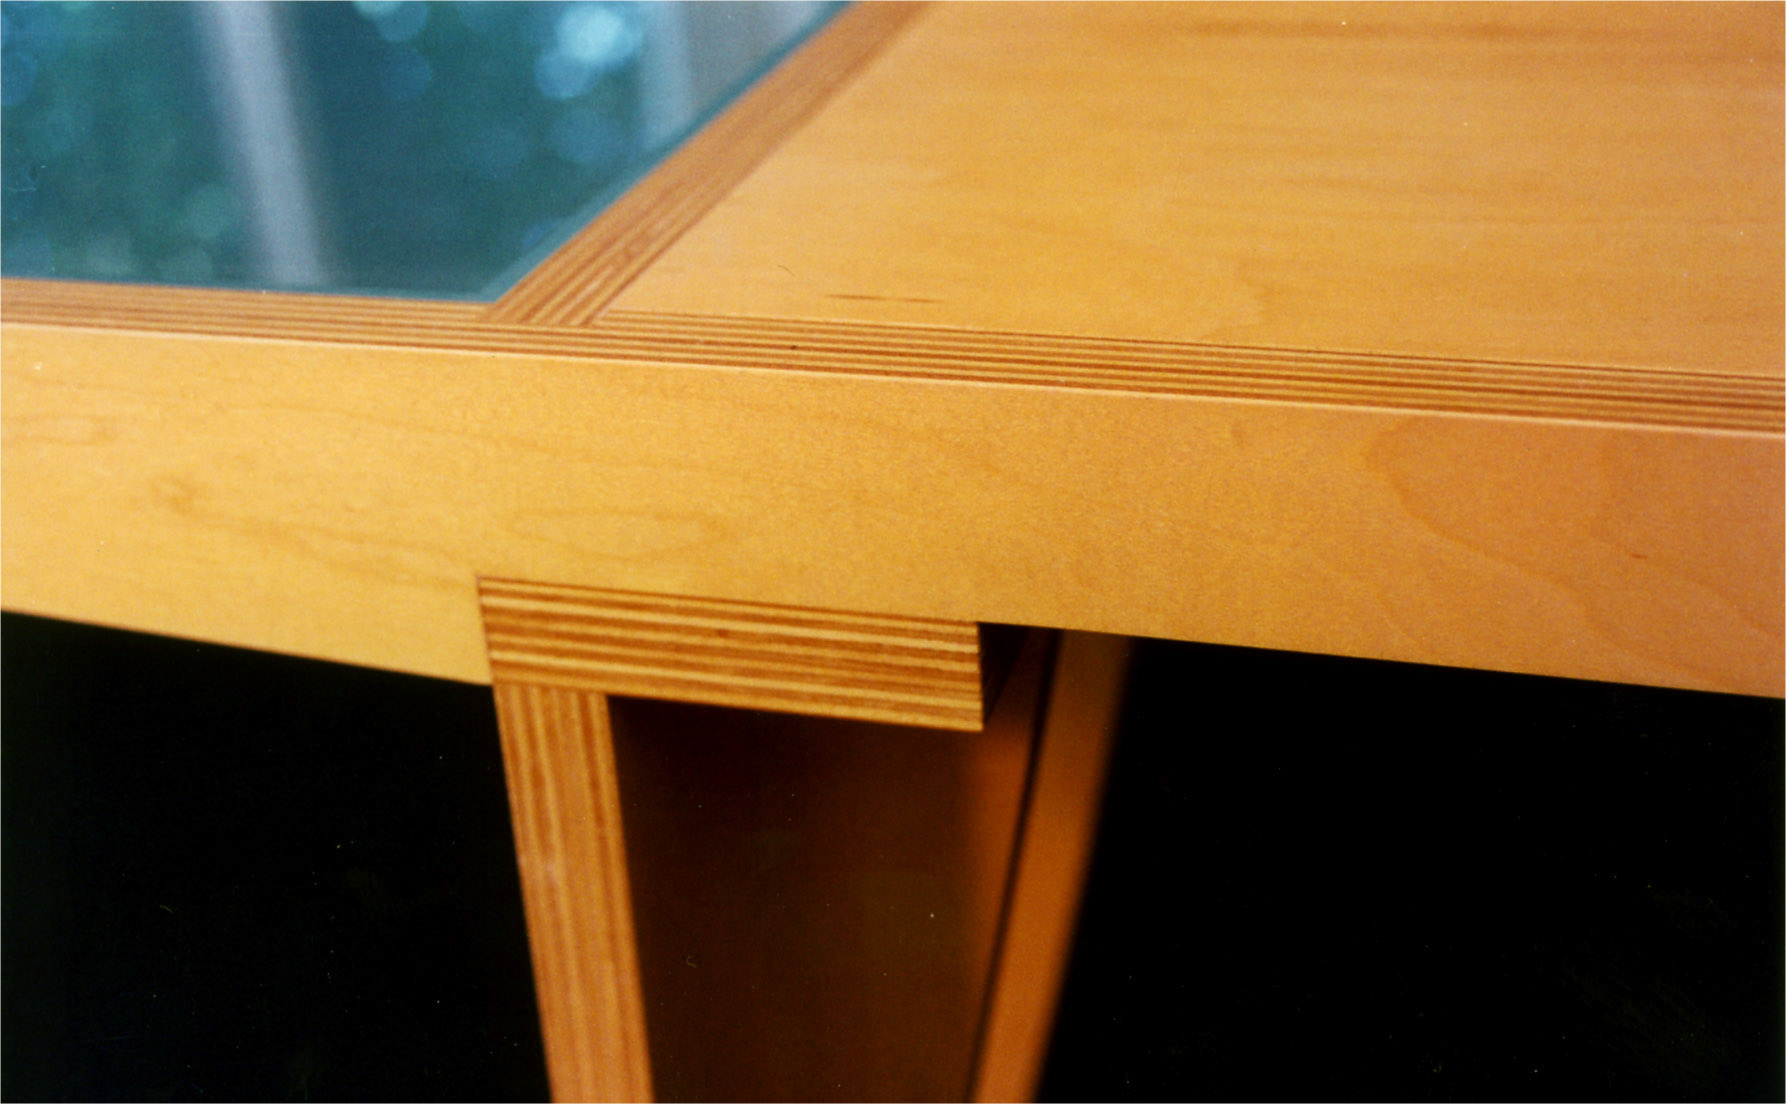 Furniture Glyph Wing Table 4.jpg